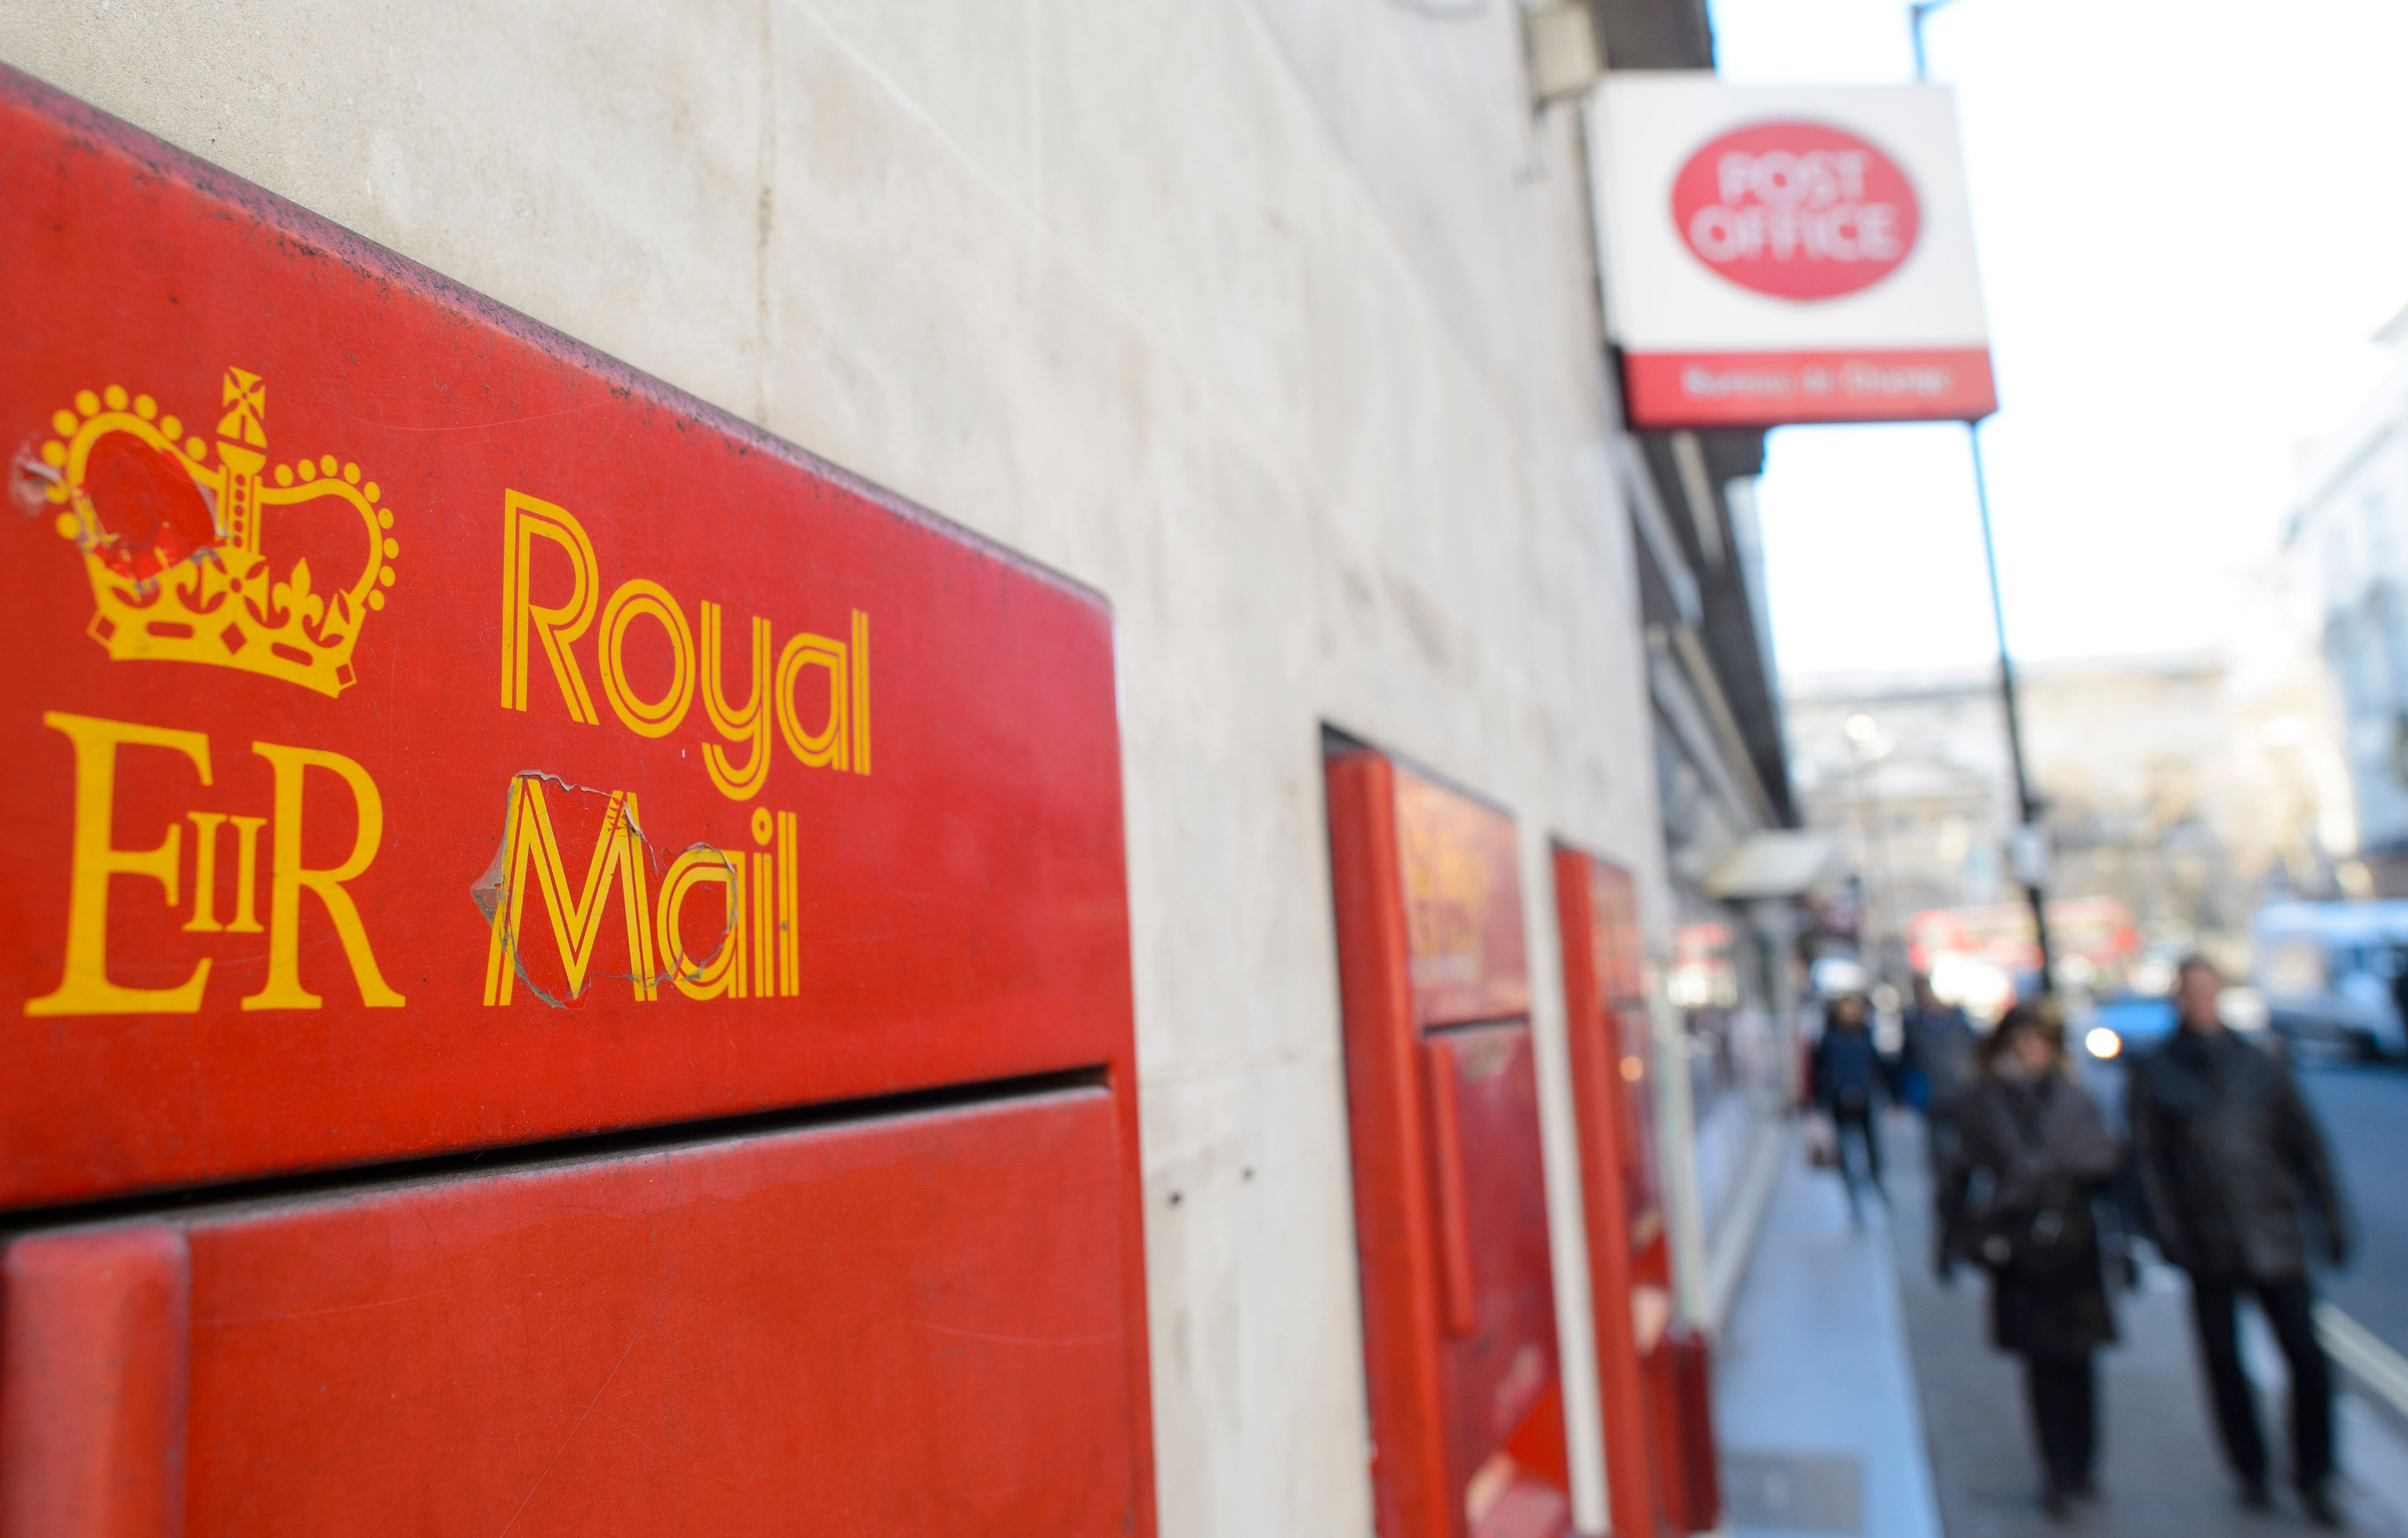 Royal Mail tells environmental campaigners to stop posting crisp packets without envelopes